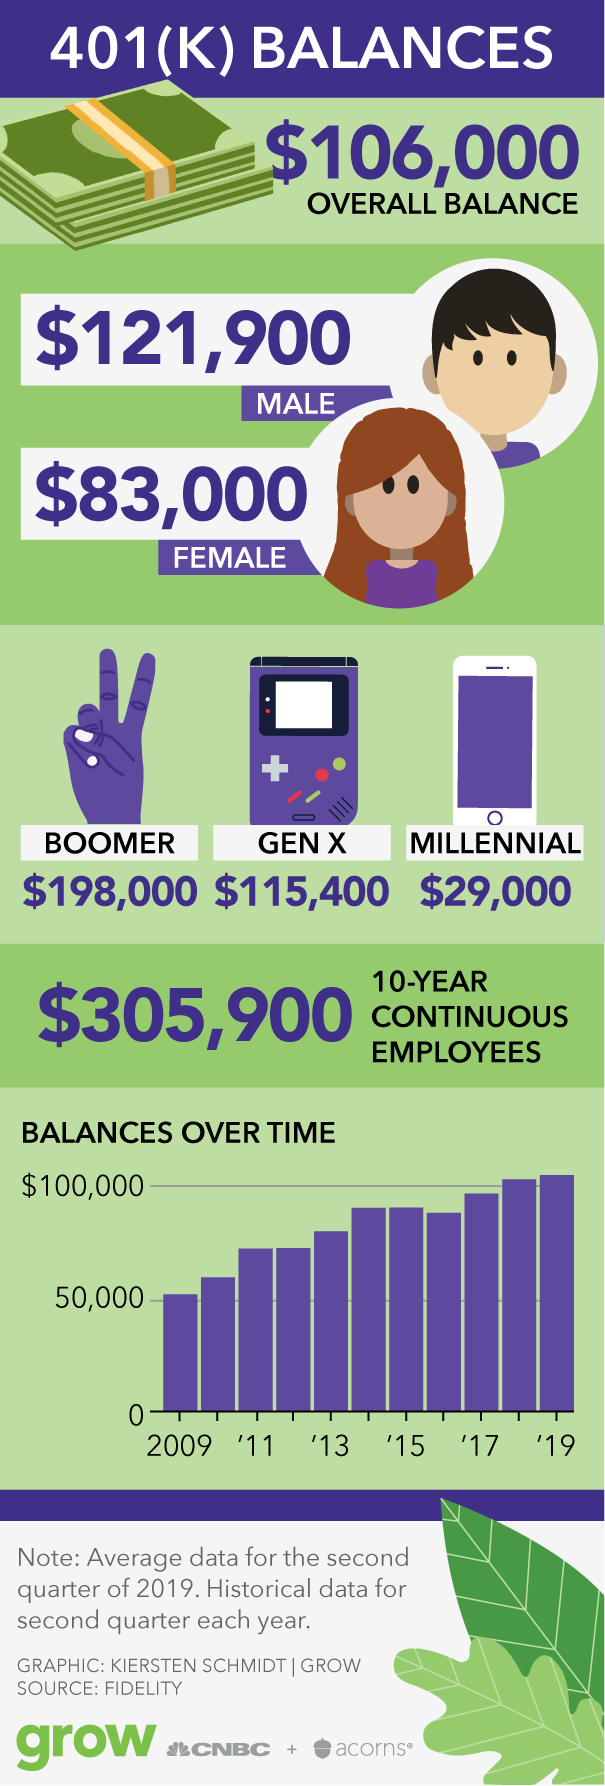 This graphics shows that the average overall 401(K) balance is $106,000 and breaks the averages down by demographics.